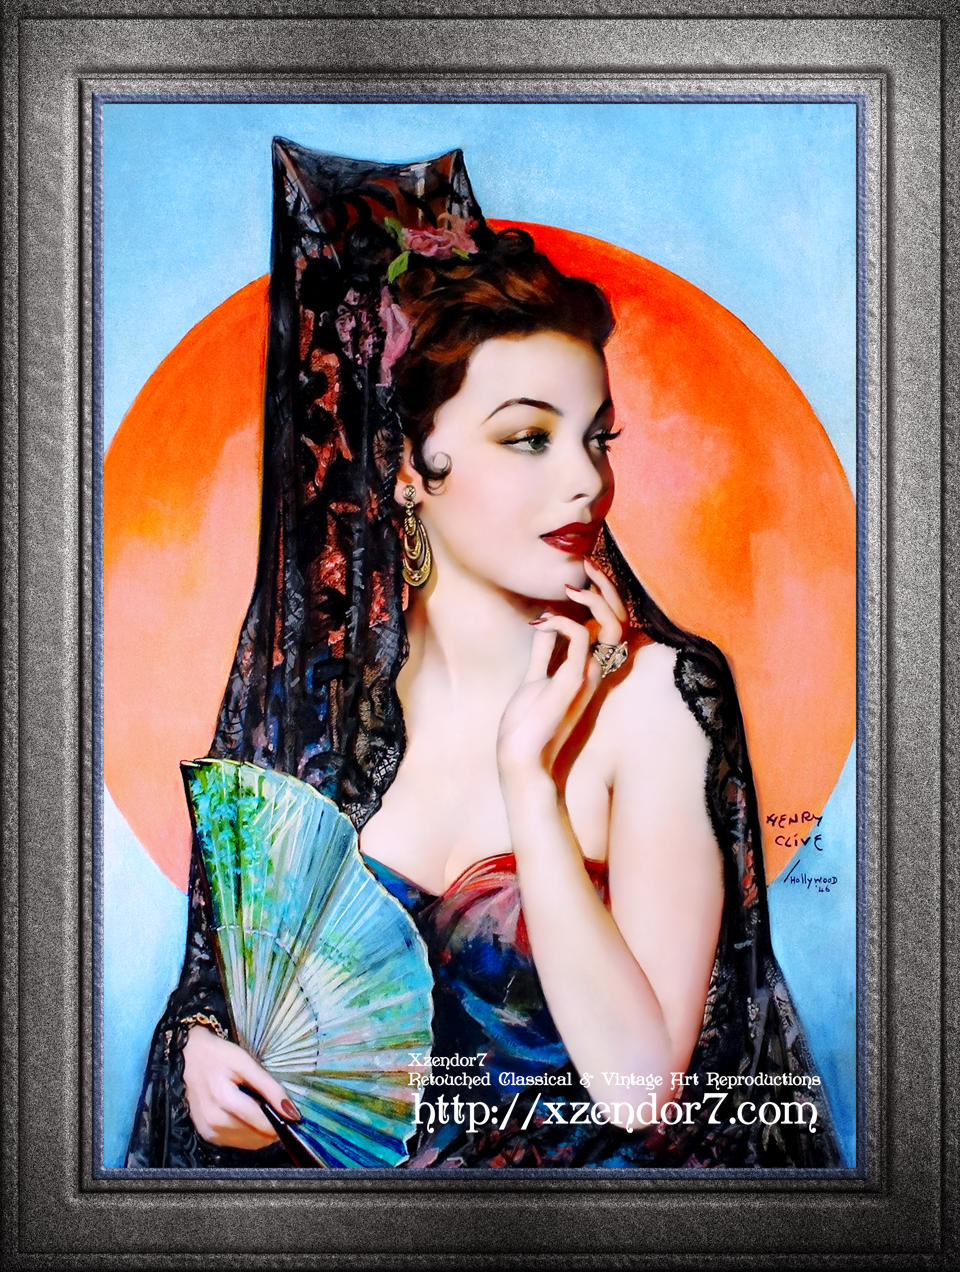 Gene Tierney as Lola Montez by Henry Clive